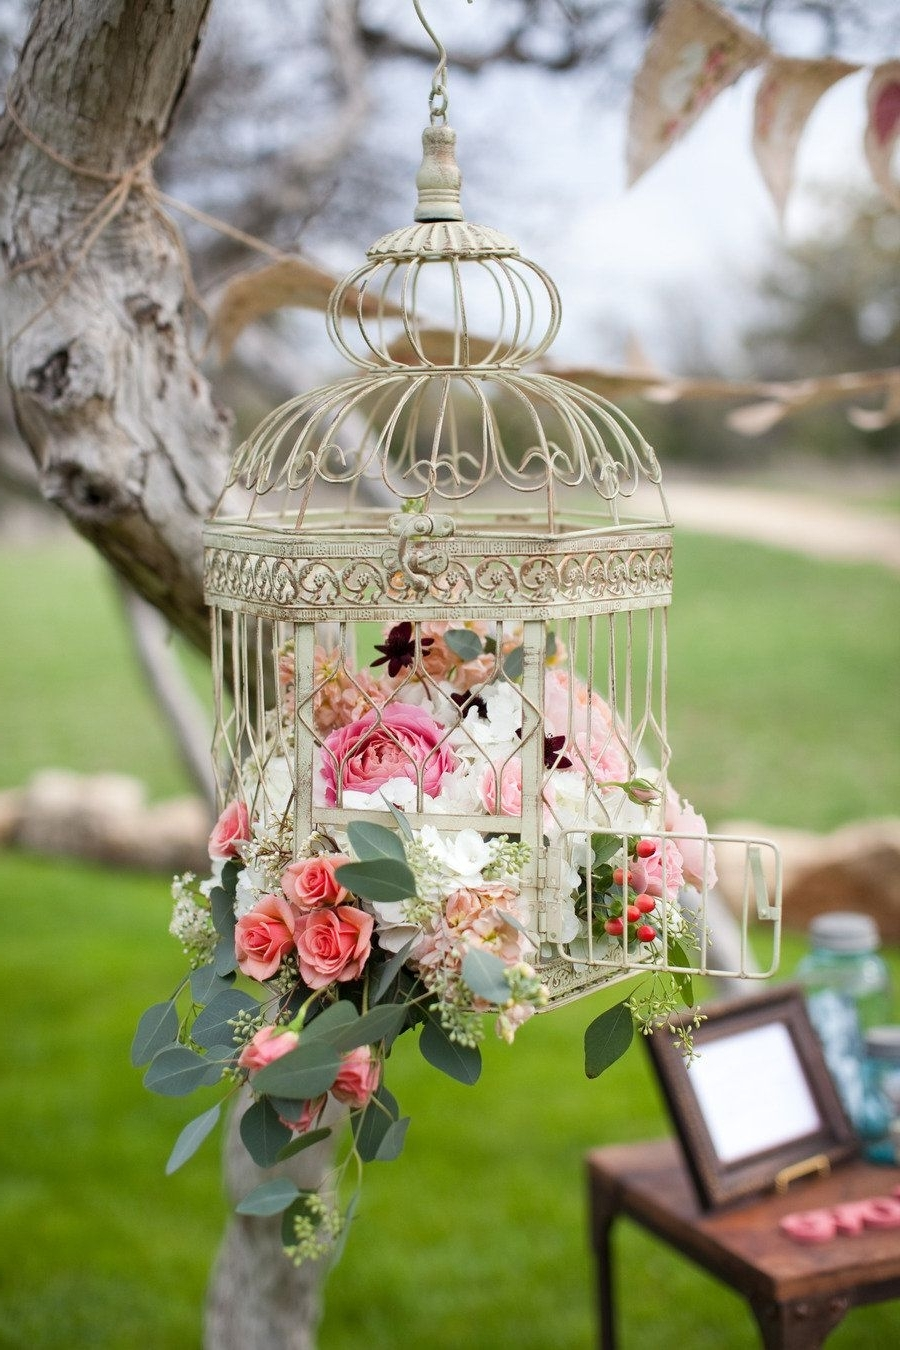 Favorite Outdoor Hanging Lanterns For Wedding Within Vista West Ranch Weddingnicole Chatham Photography (View 6 of 20)